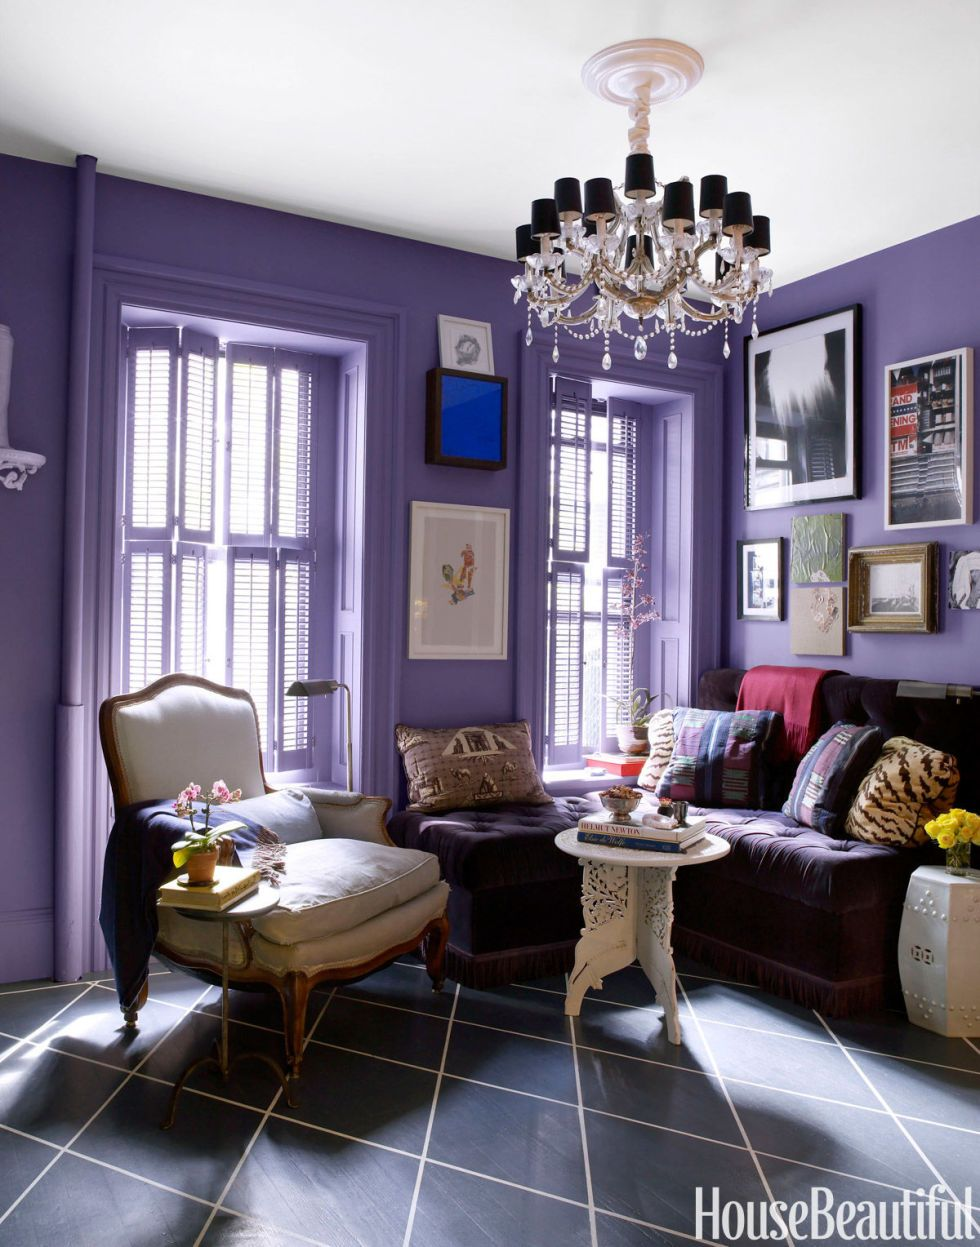 house beautiful living room ideas floor vases for small apartment decorating how to decorate spaces paint color